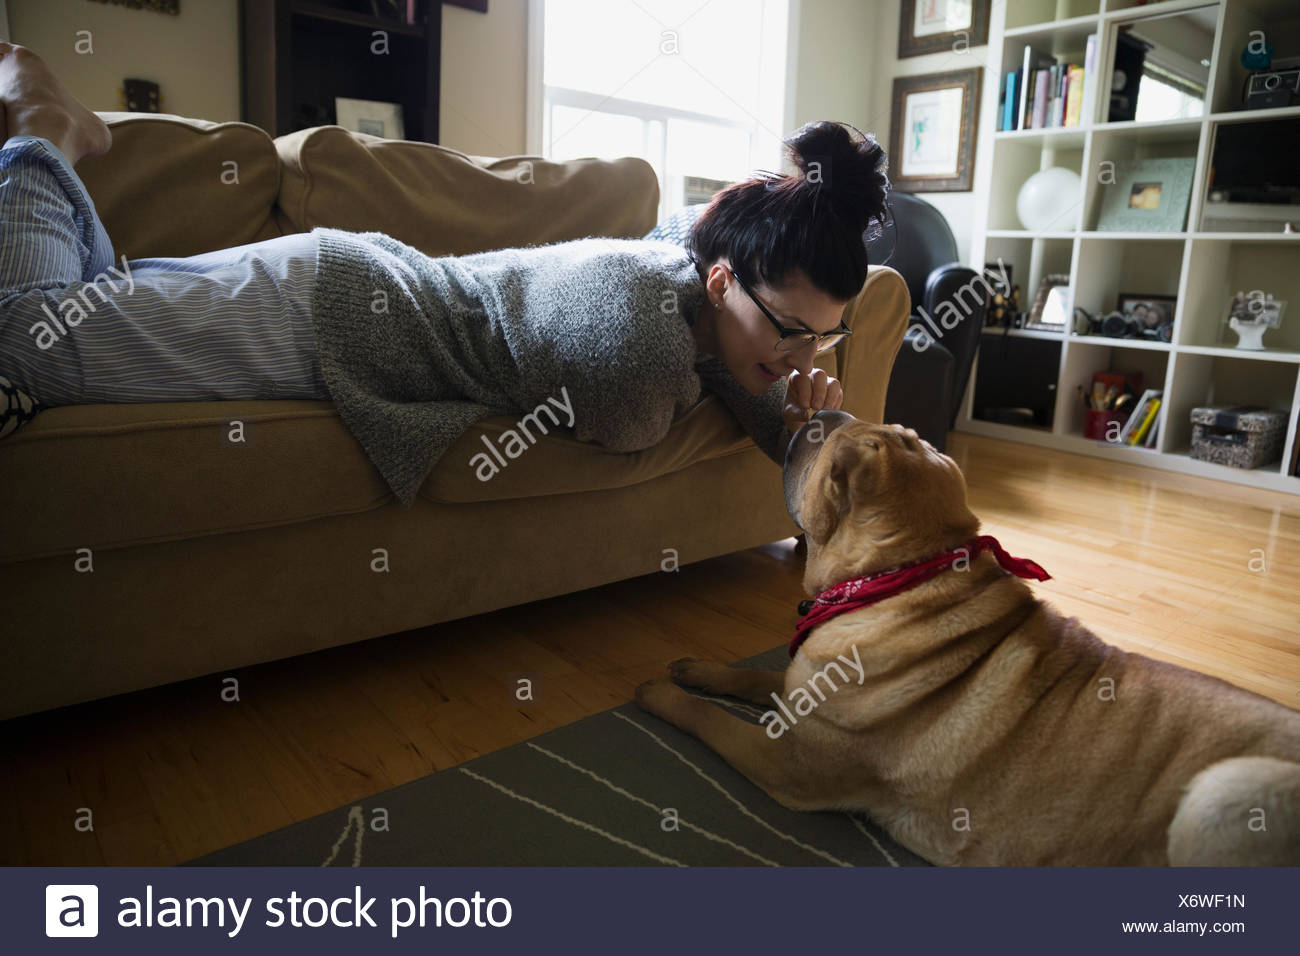 Woman on sofa petting dog's nose in living room - Stock Image